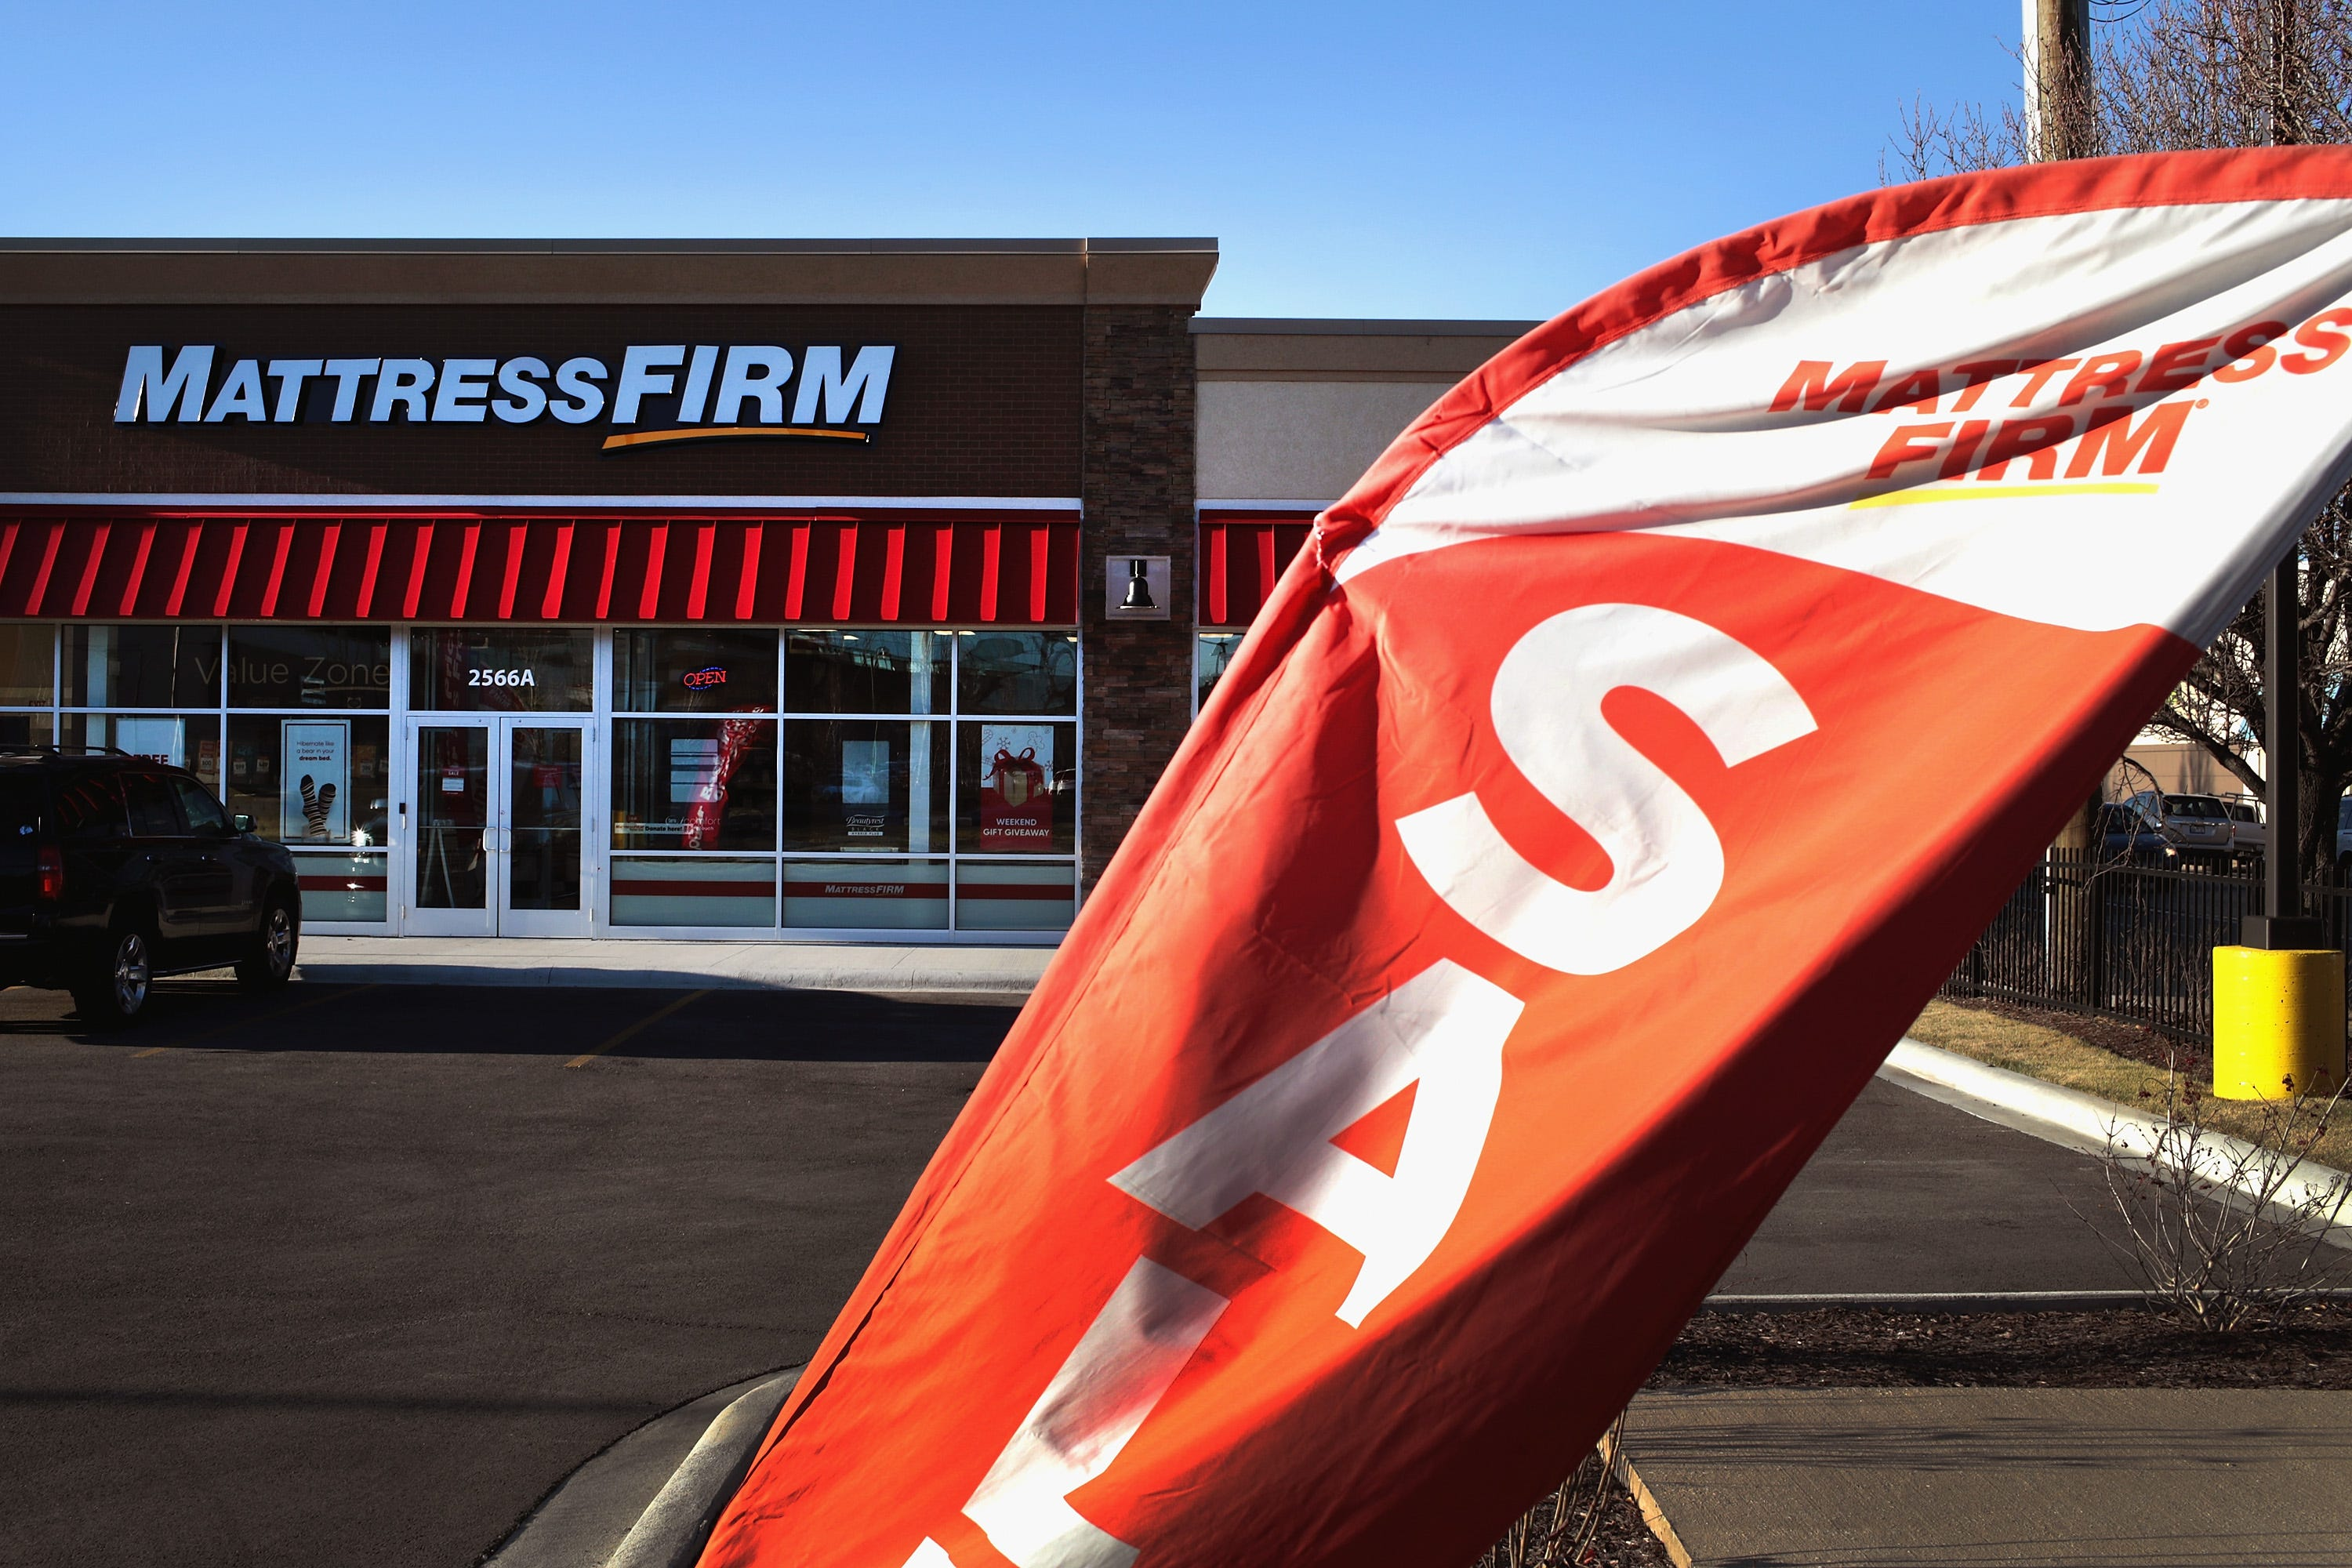 Mattress Firm is 'conspiring' to sell bogus mattresses, Tempur-Pedic alleges in lawsuit